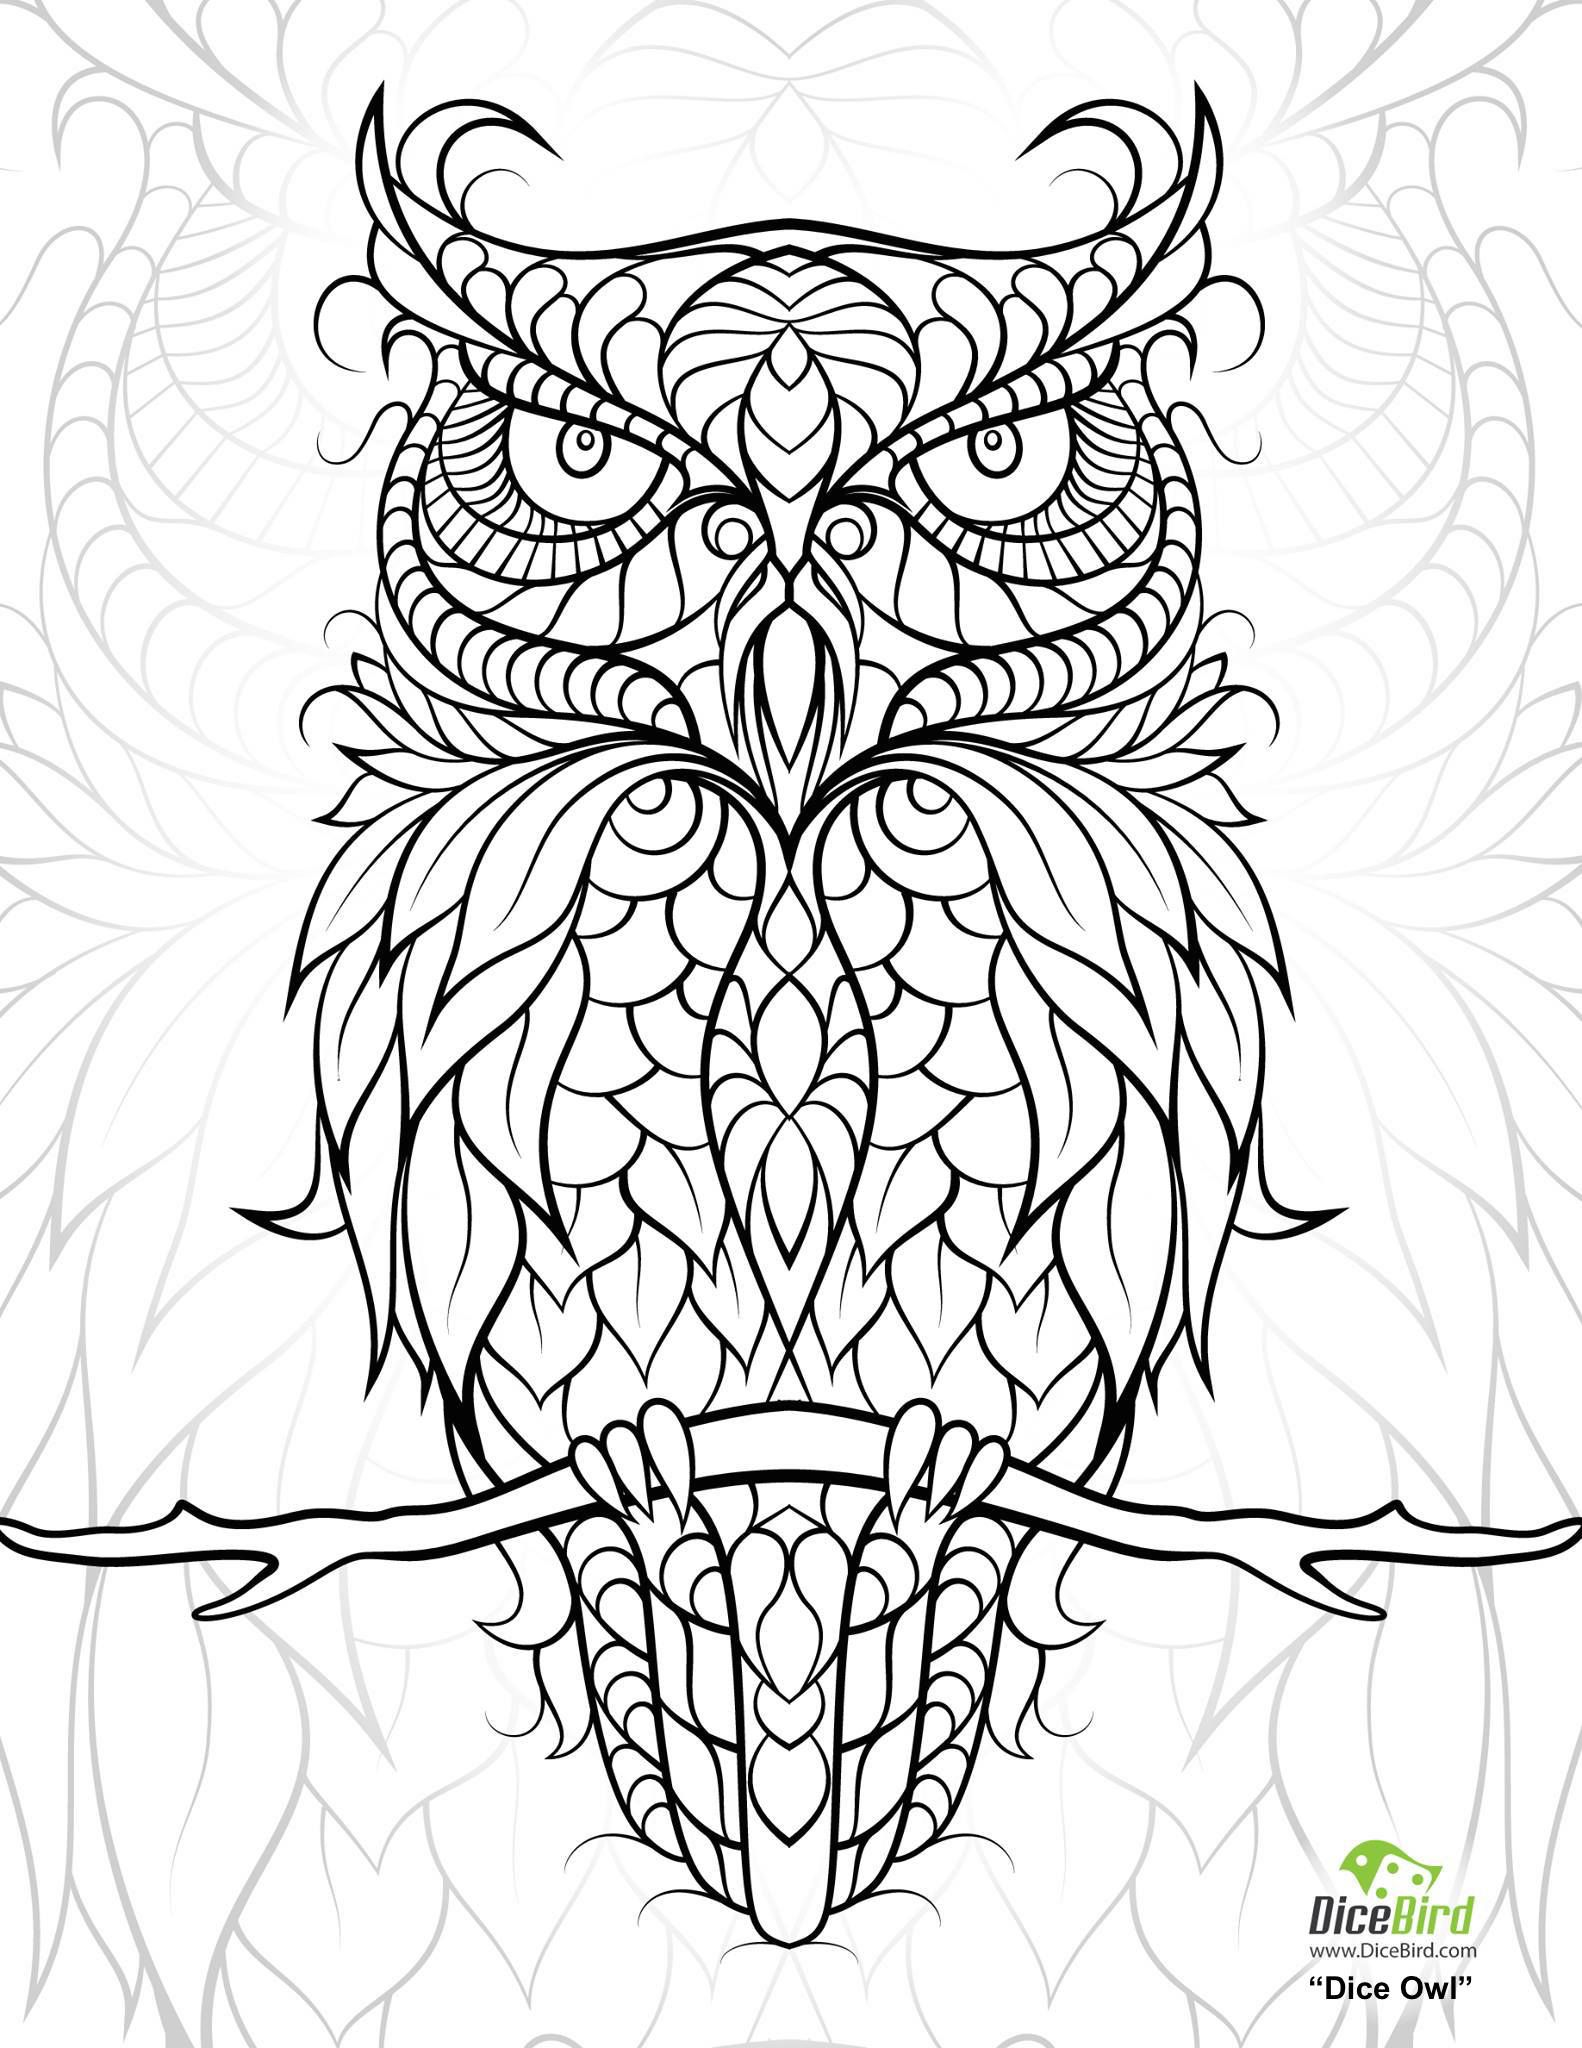 full size coloring pages diceowl free printable adult coloring pages owl coloring size pages coloring full